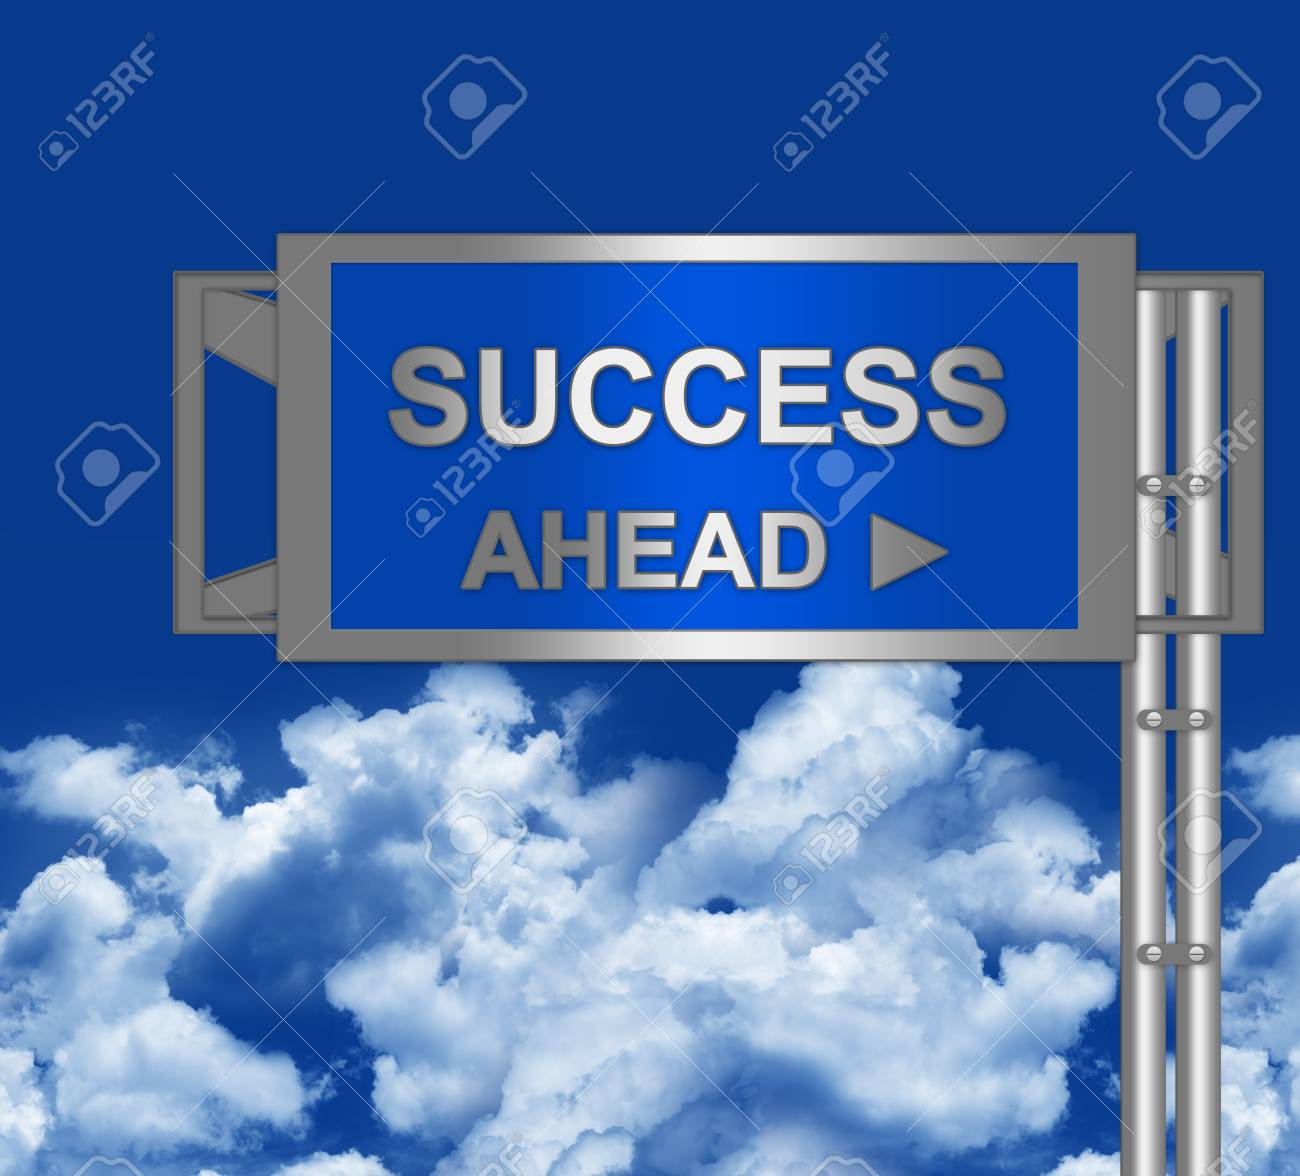 Success Ahead on Blue Highway Street Sign With Blue Sky Background Stock Photo - 16711776